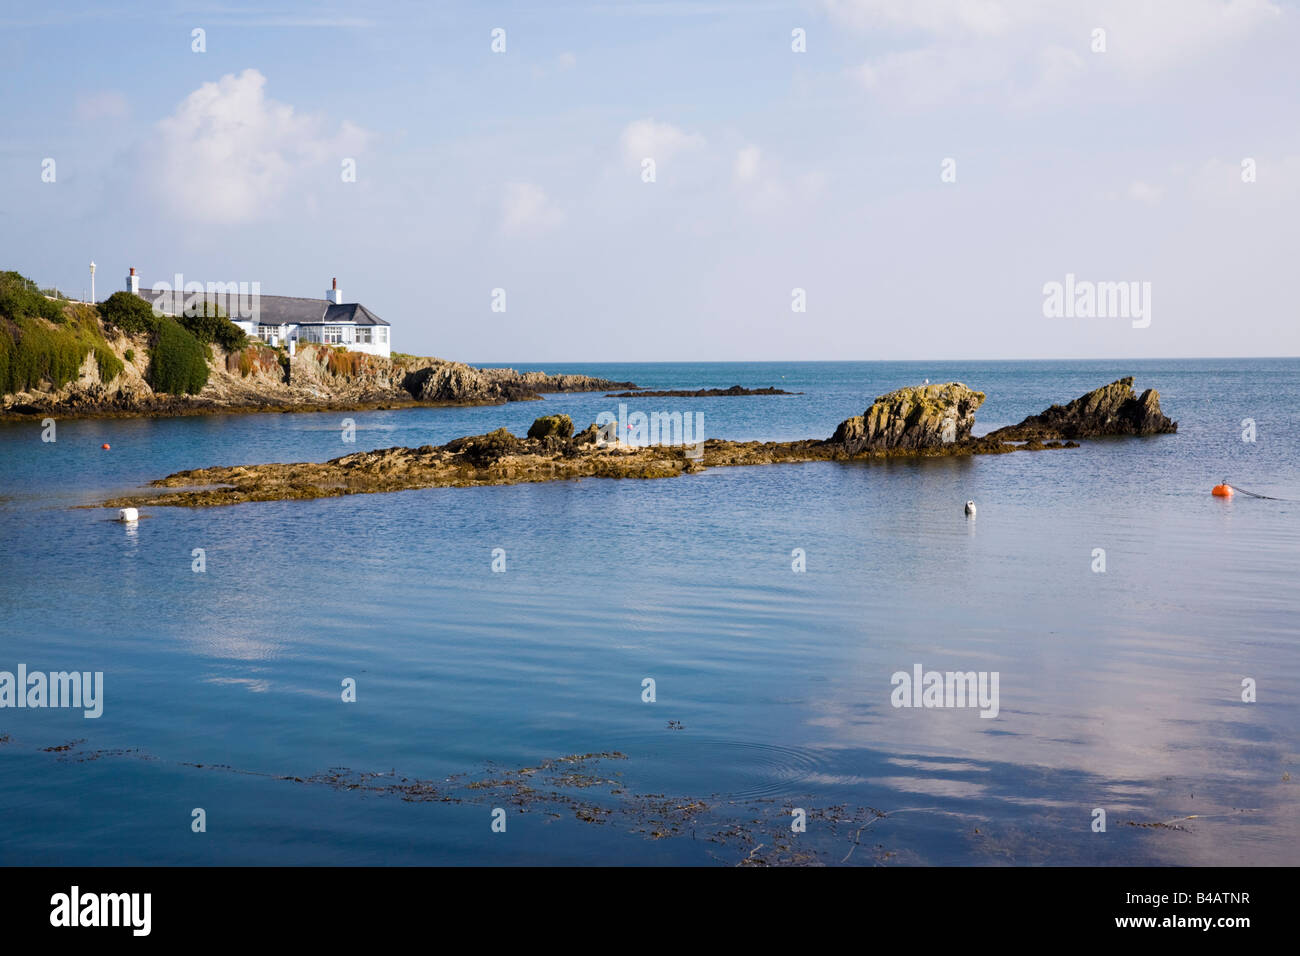 Small bay on rocky coastline in AONB. Bull Bay (Porth Llechog) Anglesey North Wales UK Britain. - Stock Image